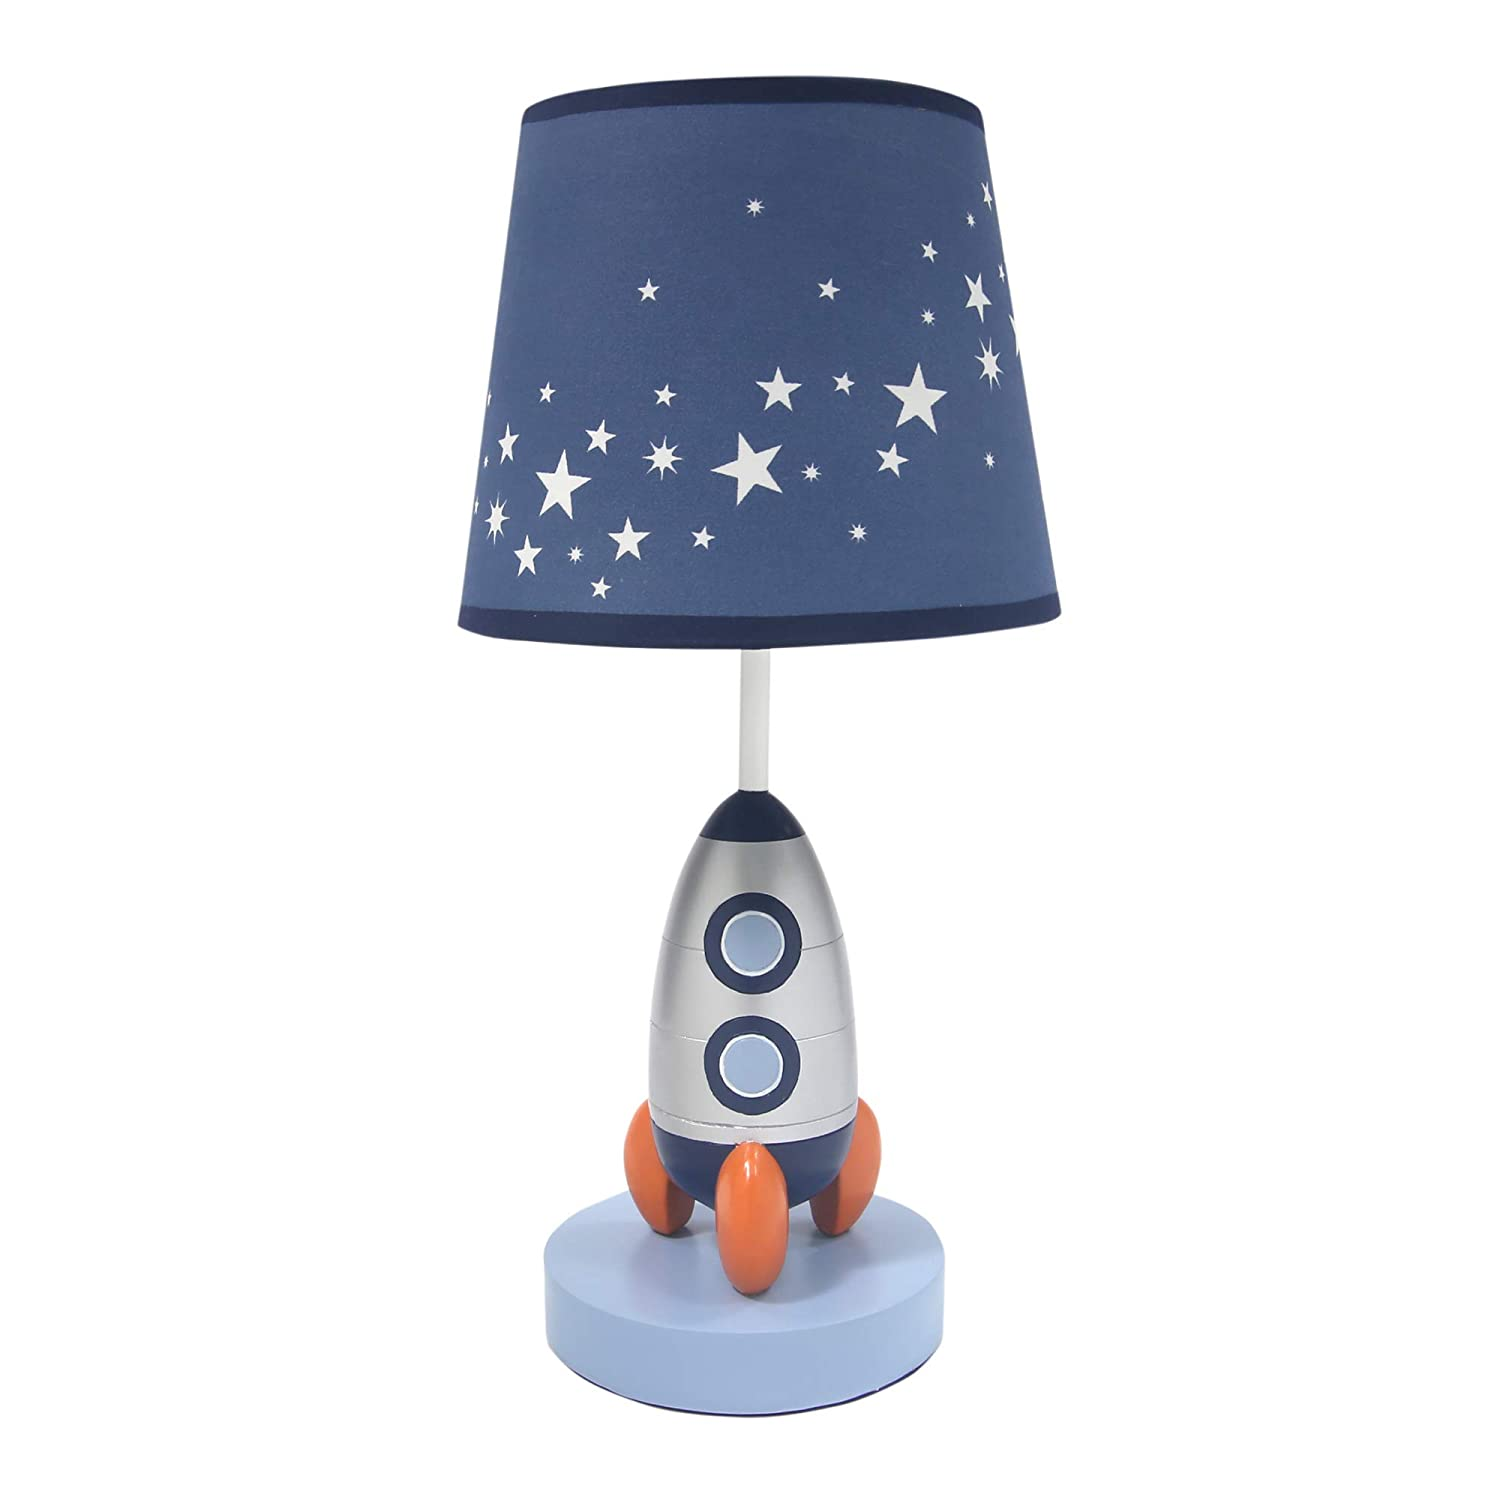 Lambs & Ivy Milky Way Lamp with Shade & Bulb - Blue, Gray, White, Modern